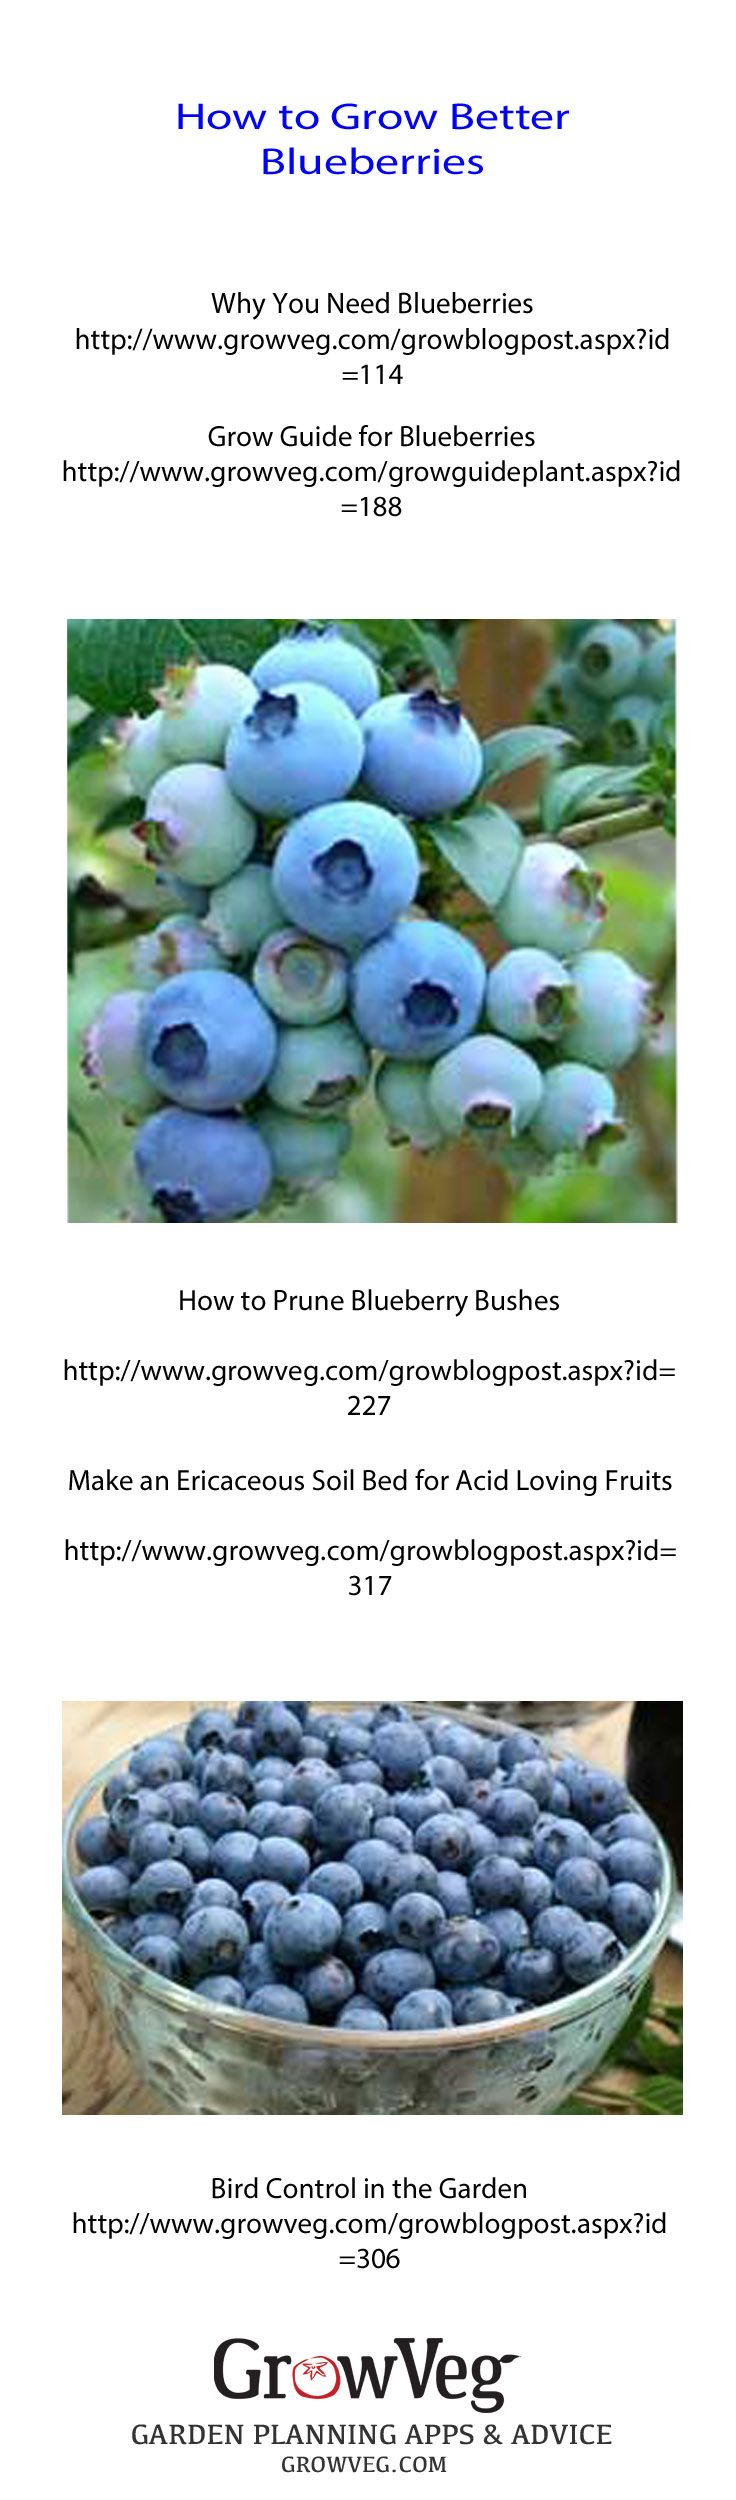 How to get your soil right, to stop bird damage and grow heaps more blueberries…